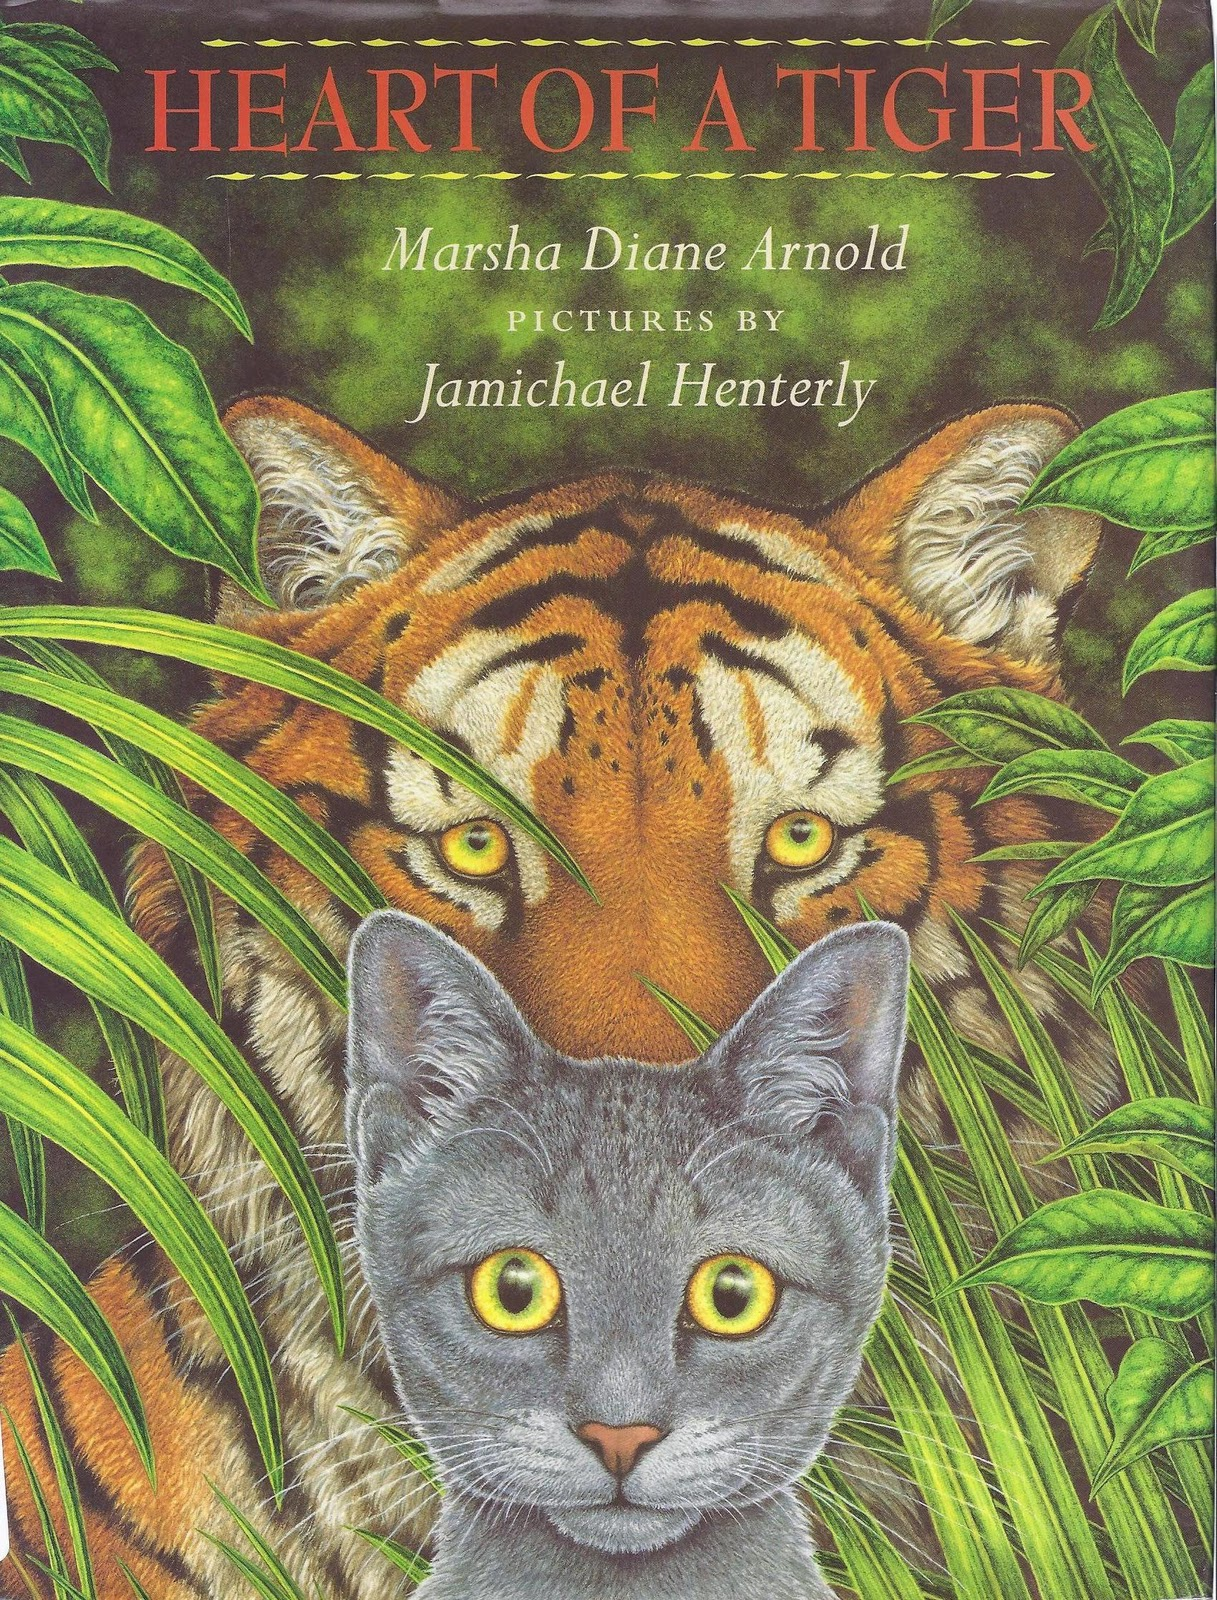 excellent kids 39 books heart of a tiger by marsha diane arnold illustrated by jamichael henterly. Black Bedroom Furniture Sets. Home Design Ideas